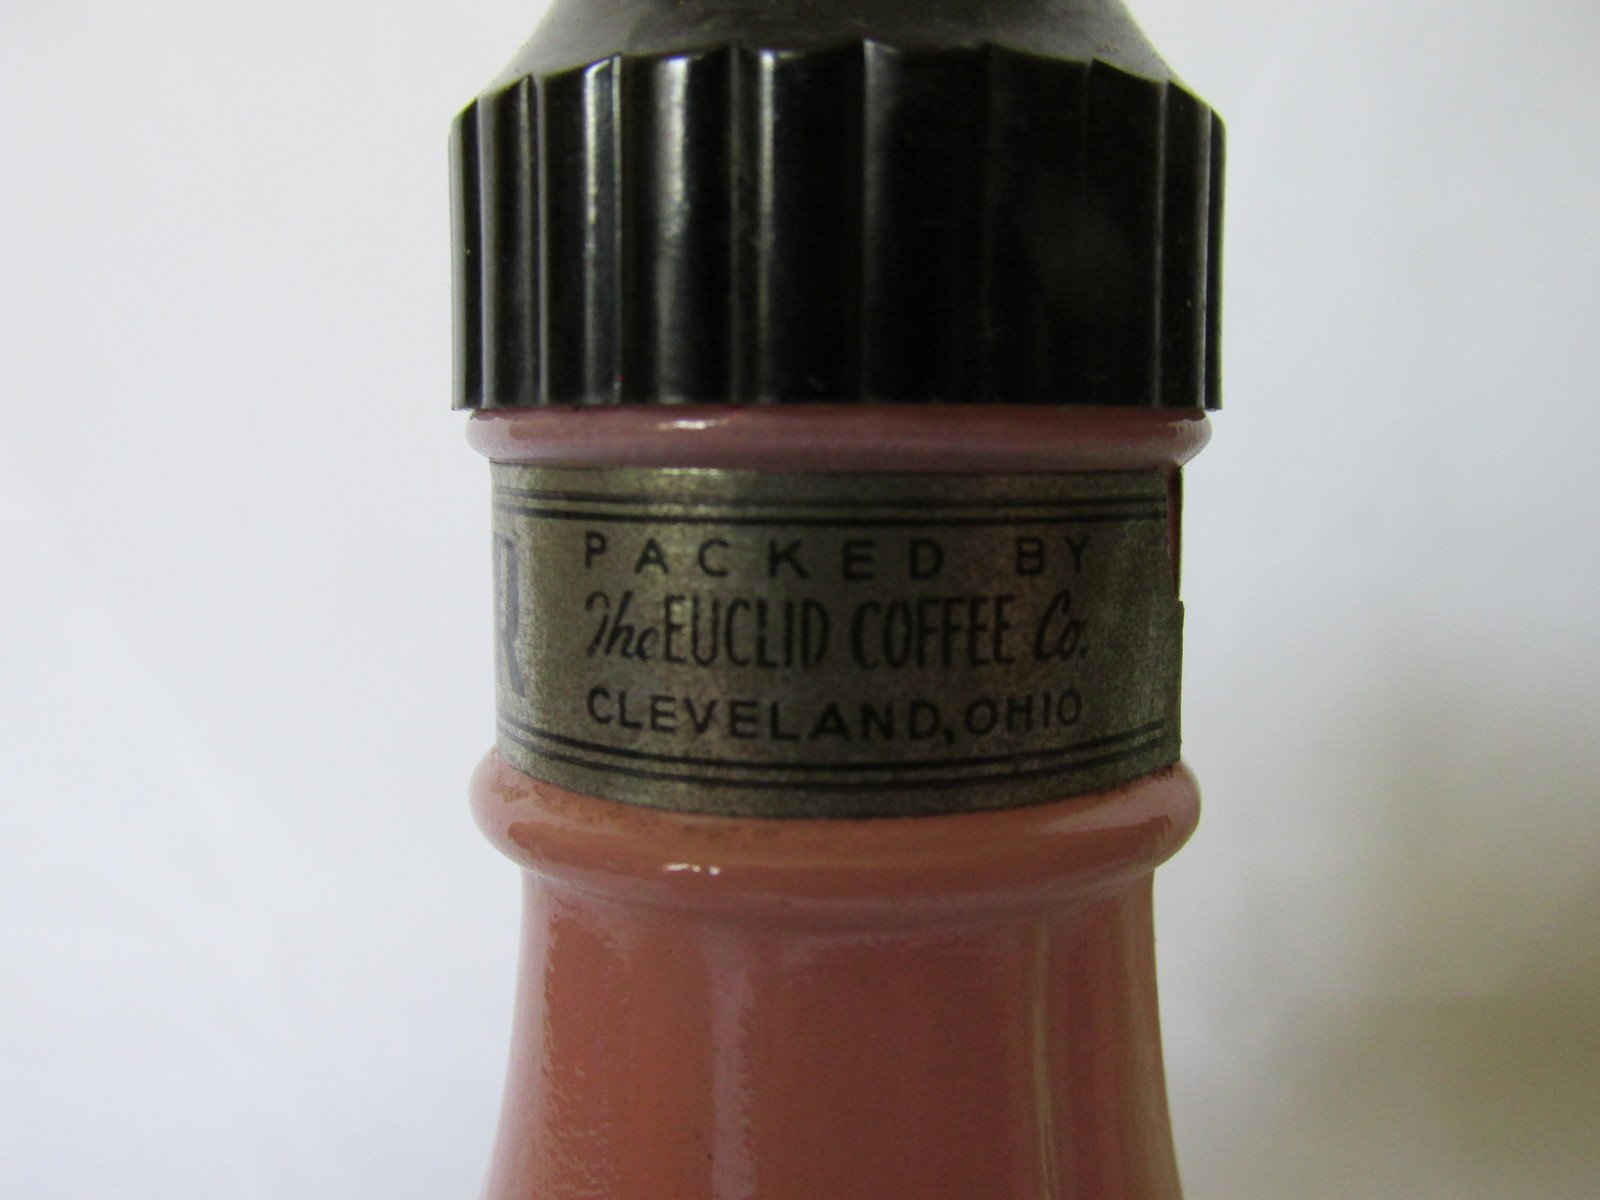 Vintage Anchor Hocking Salt & Pepper Shakers - Euclid Coffee Co. Label, 1950s